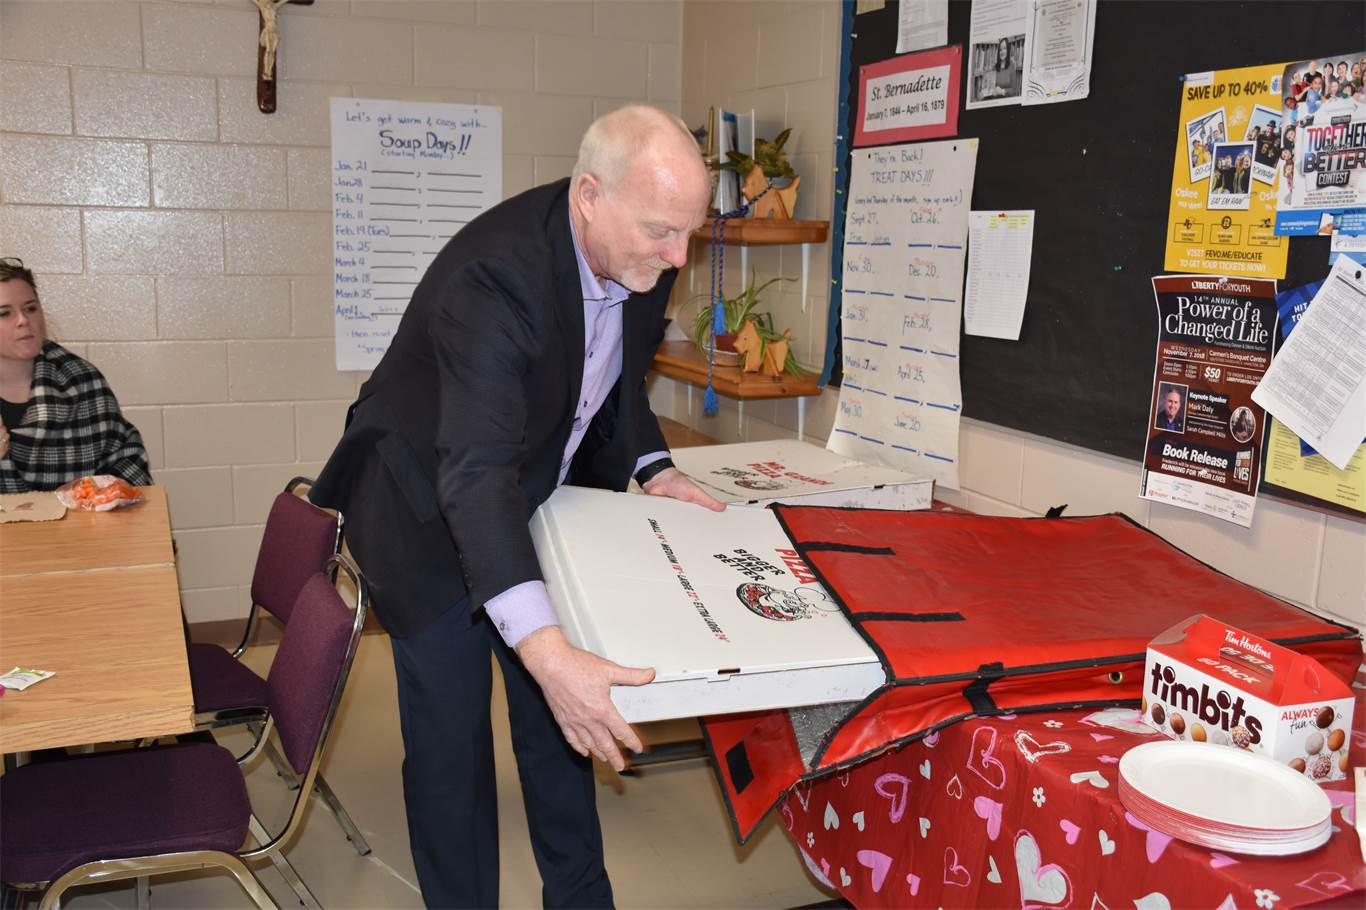 Director of Education David Hansen delivered two party-sized pizzas to St. Bernadette School as a thank you for the school's very creative and successful United Way employee campaign. A special thank you is extended to Mr. Grande Pizza on Rymal Rd., who generously donated one of the pizzas.